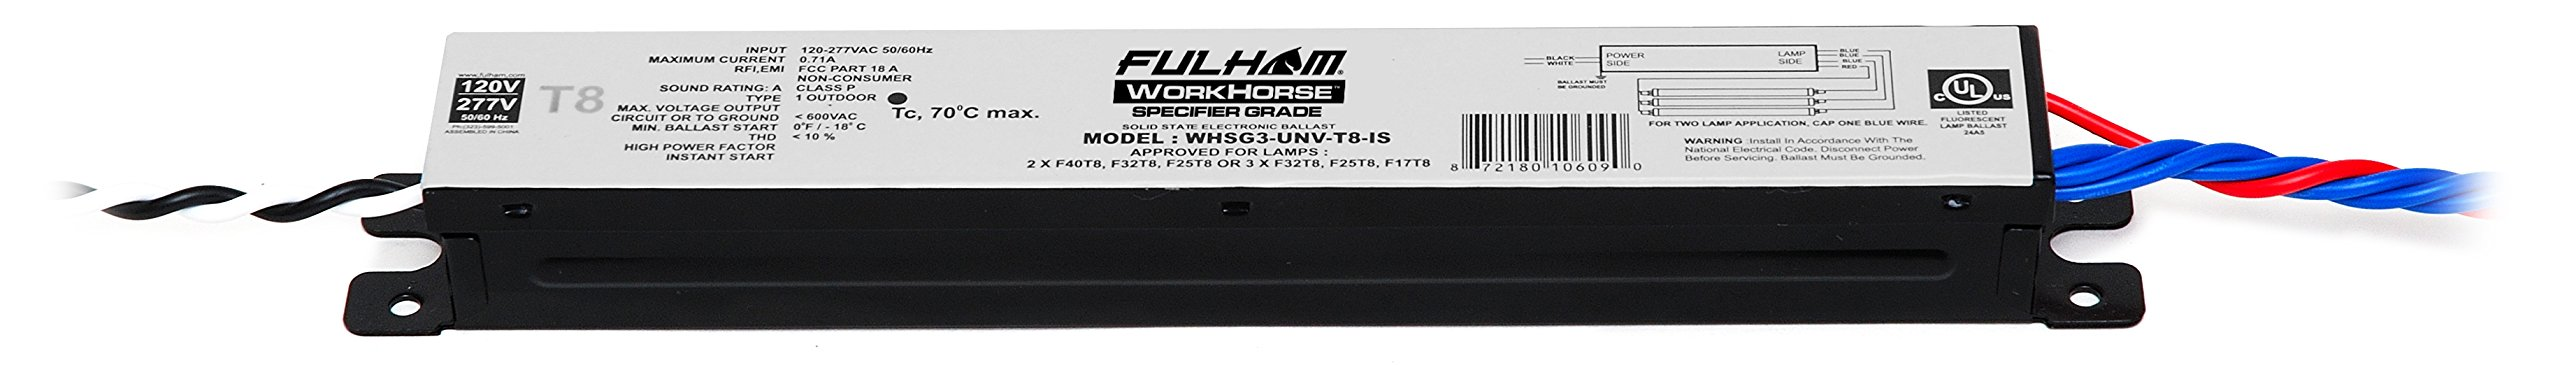 Fulham Specification Grade Linear T8 Ballast, WHSG3-UNV-T8-IS